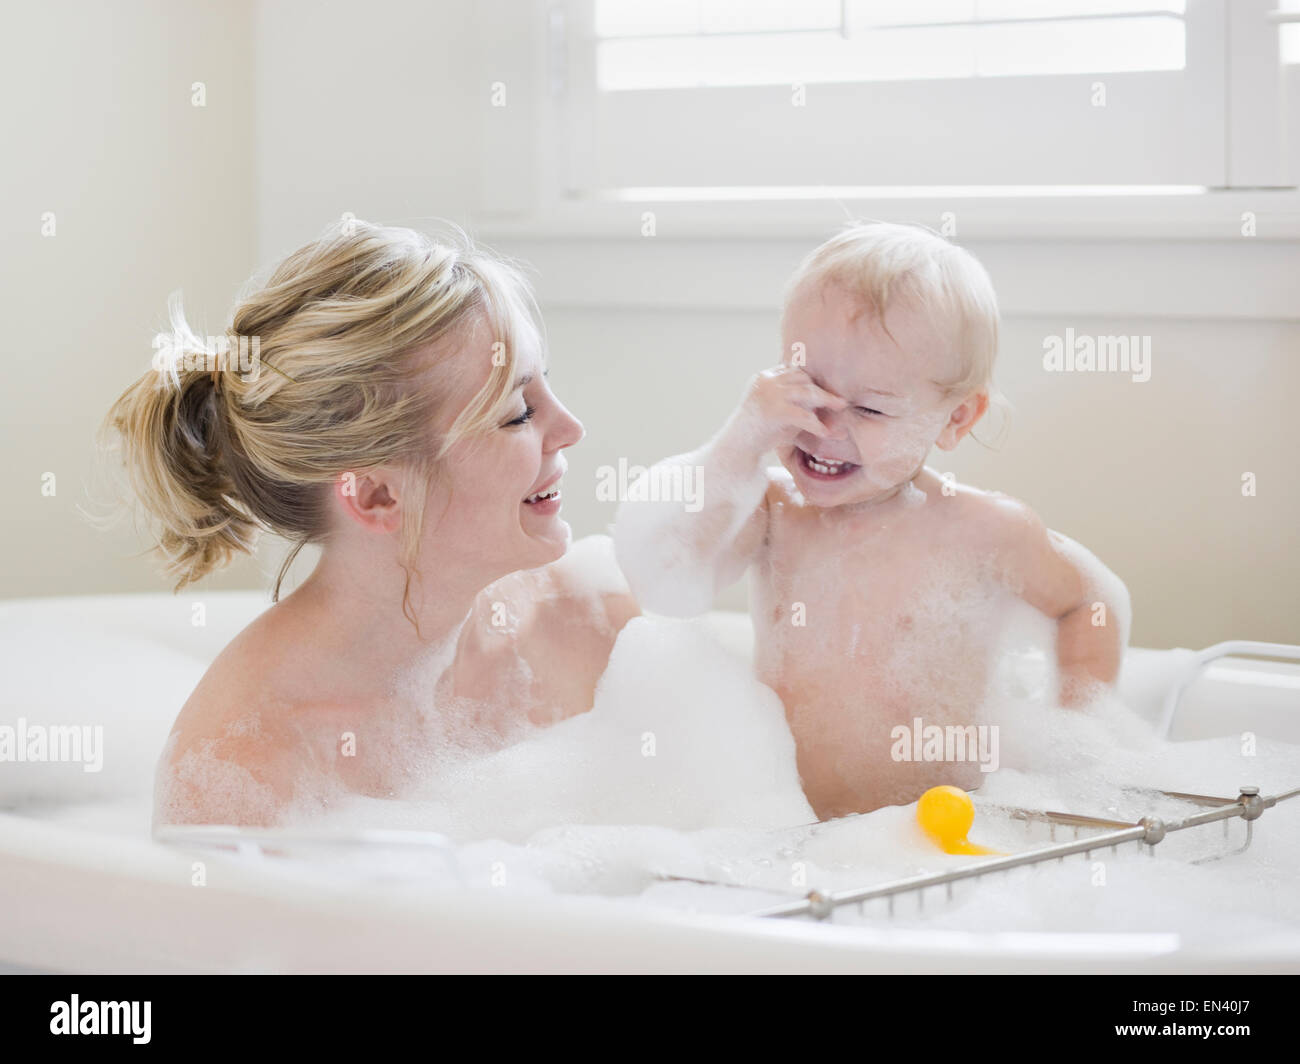 Mother And Baby Taking A Bubble Bath Stock Photo 81837567